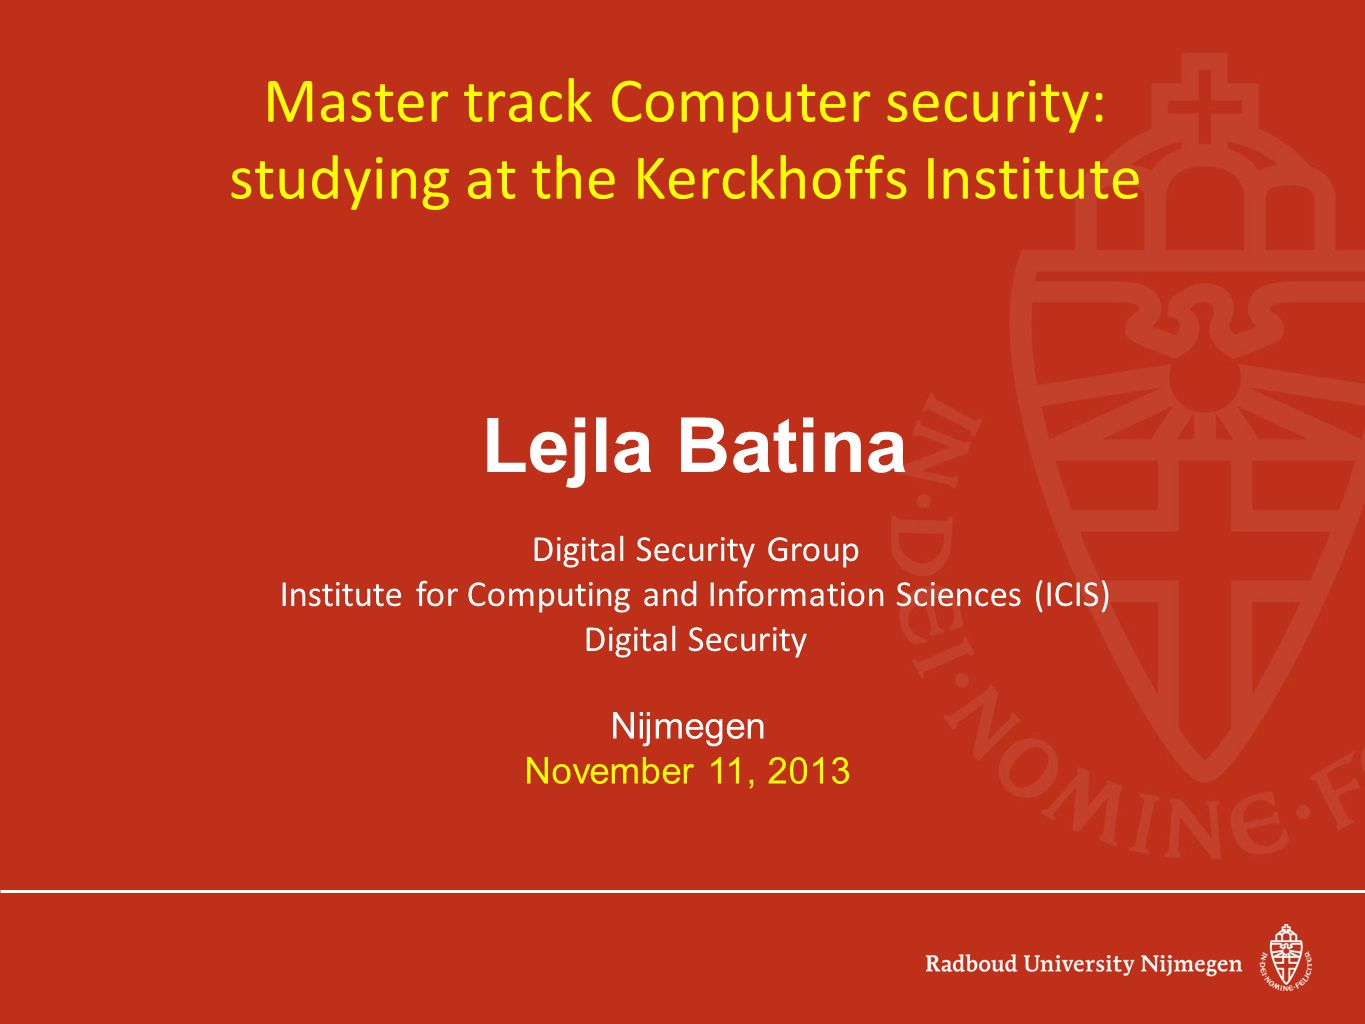 Master track Computer security: studying at the Kerckhoffs Institute Lejla Batina Digital Security Group Institute for Computing and Information Sciences (ICIS) Digital Security Nijmegen November 11, 2013